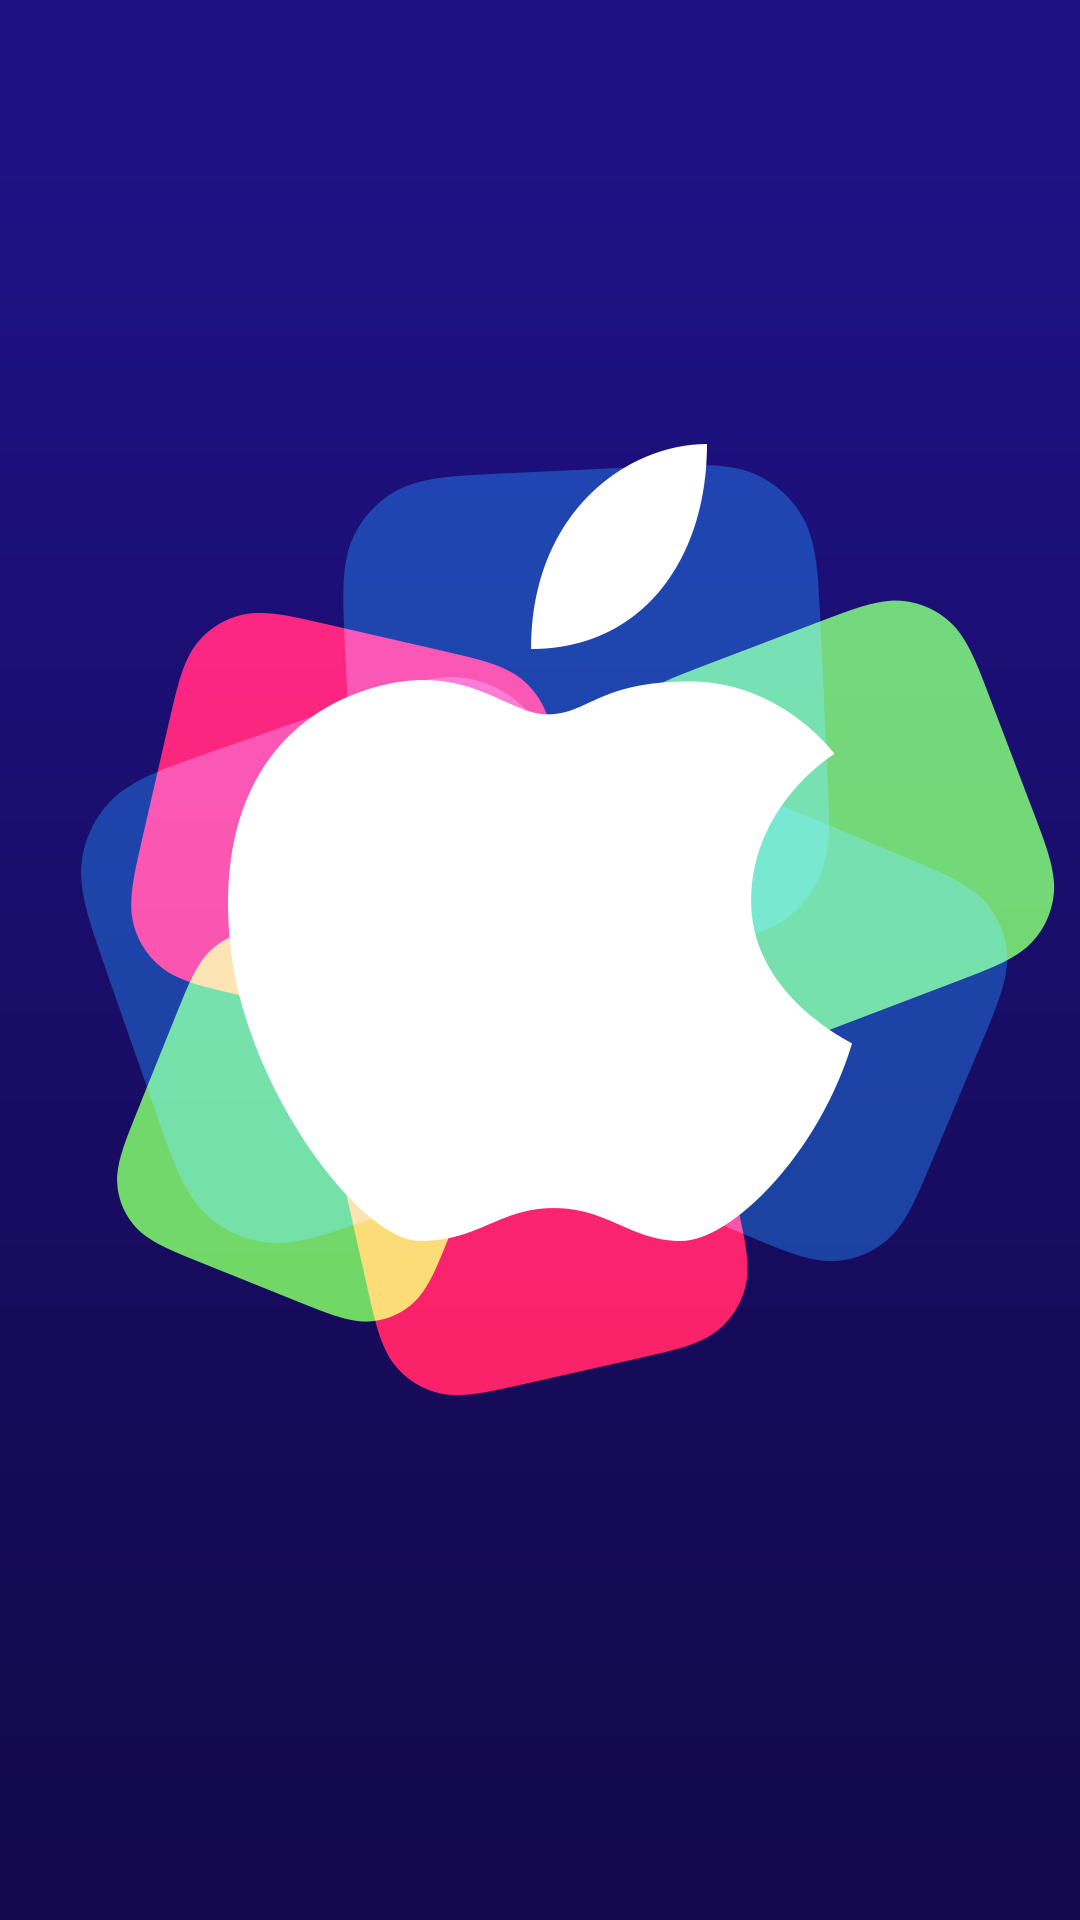 Apple-Event-September-9-Wallpaper-bart17.iphone